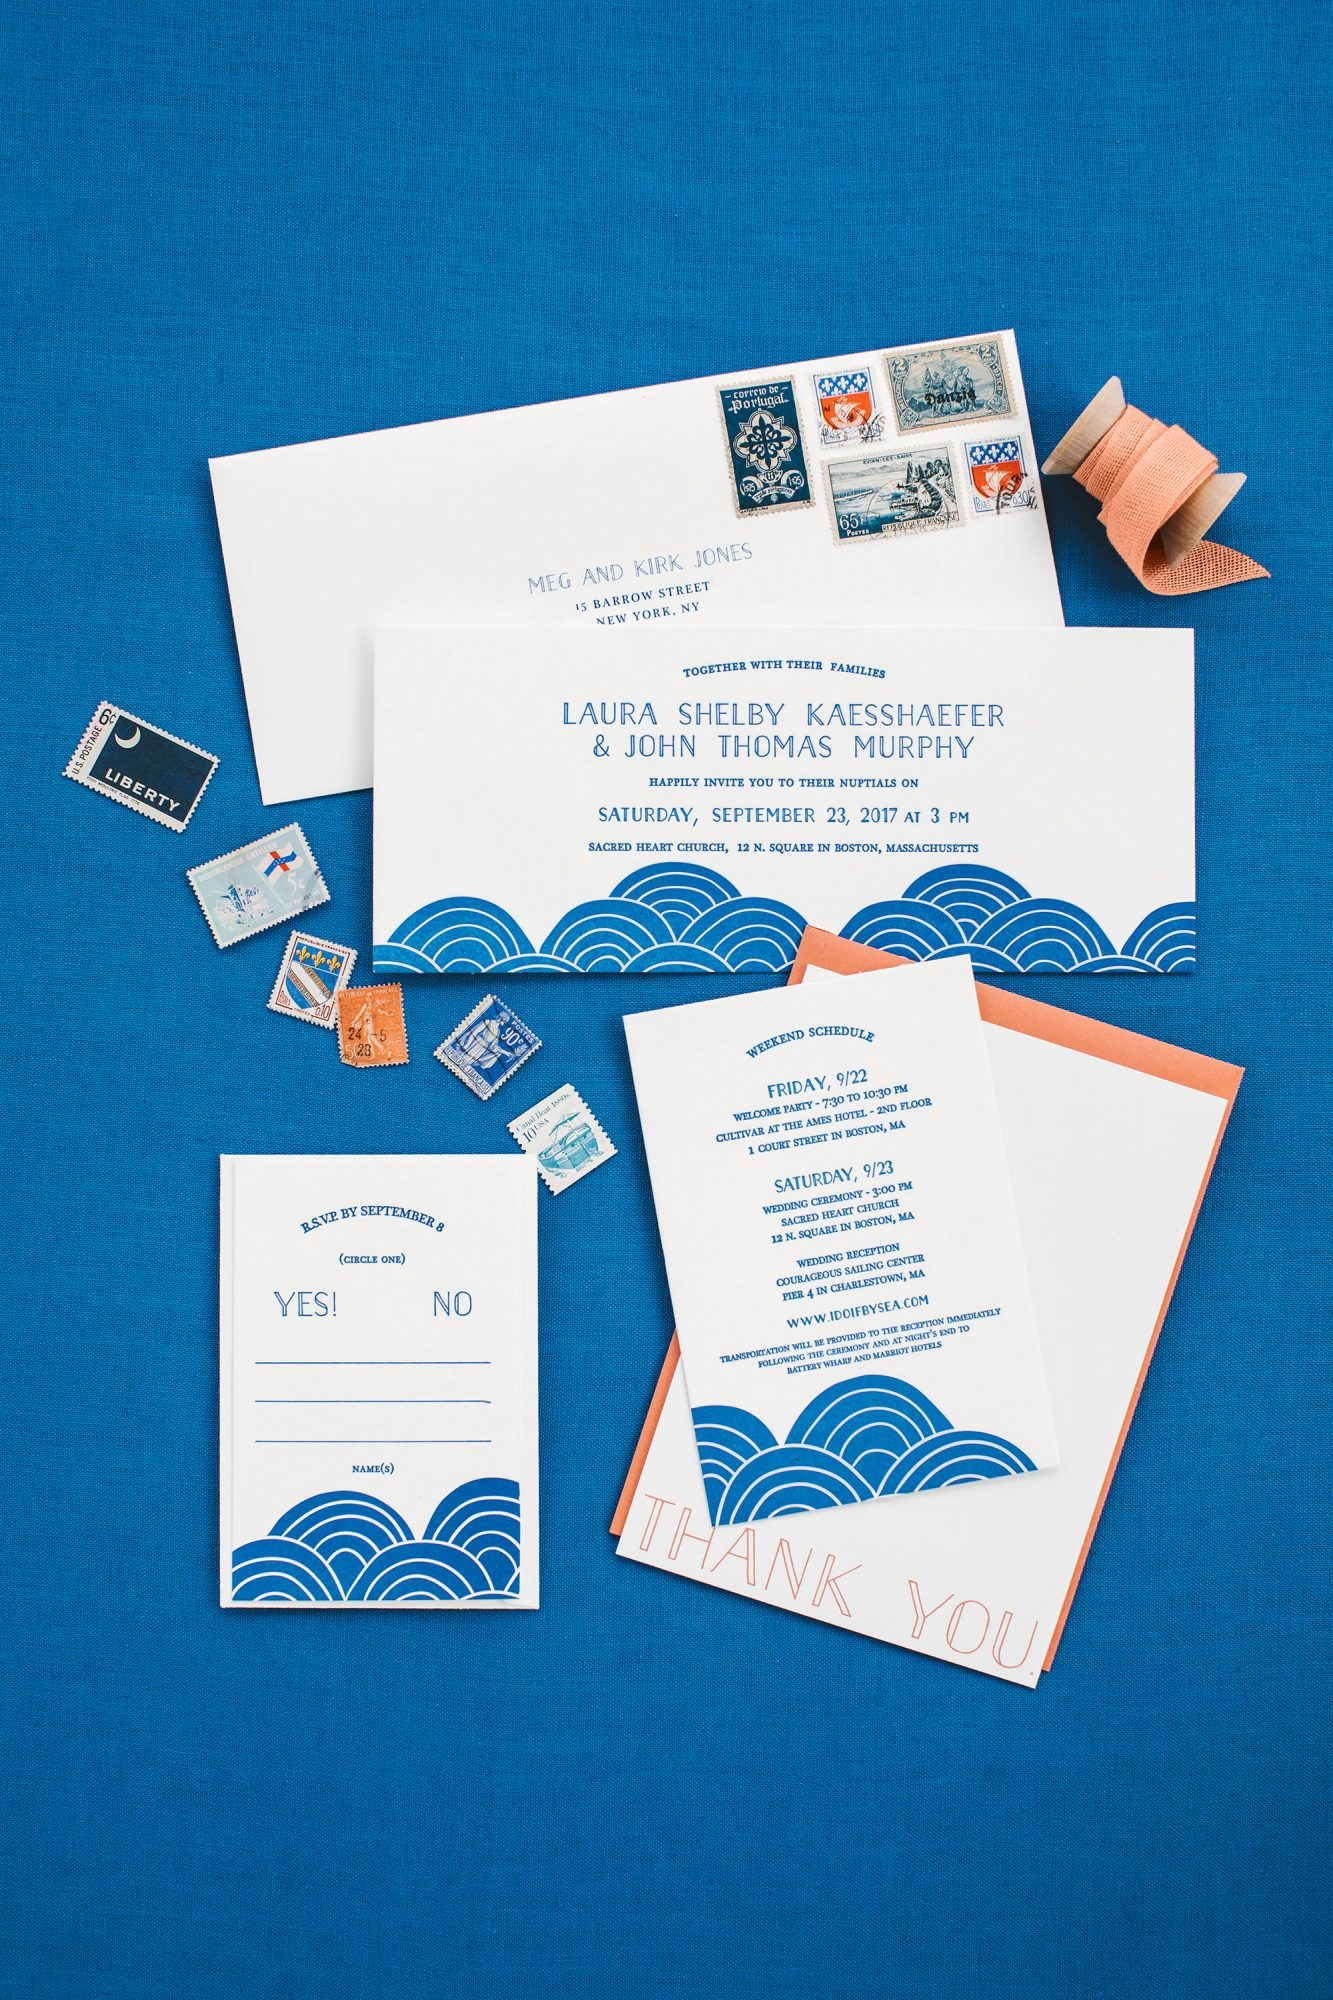 The invitations (also designed by Laura) featured a repeating wave pattern created by Black Lamb Studio.